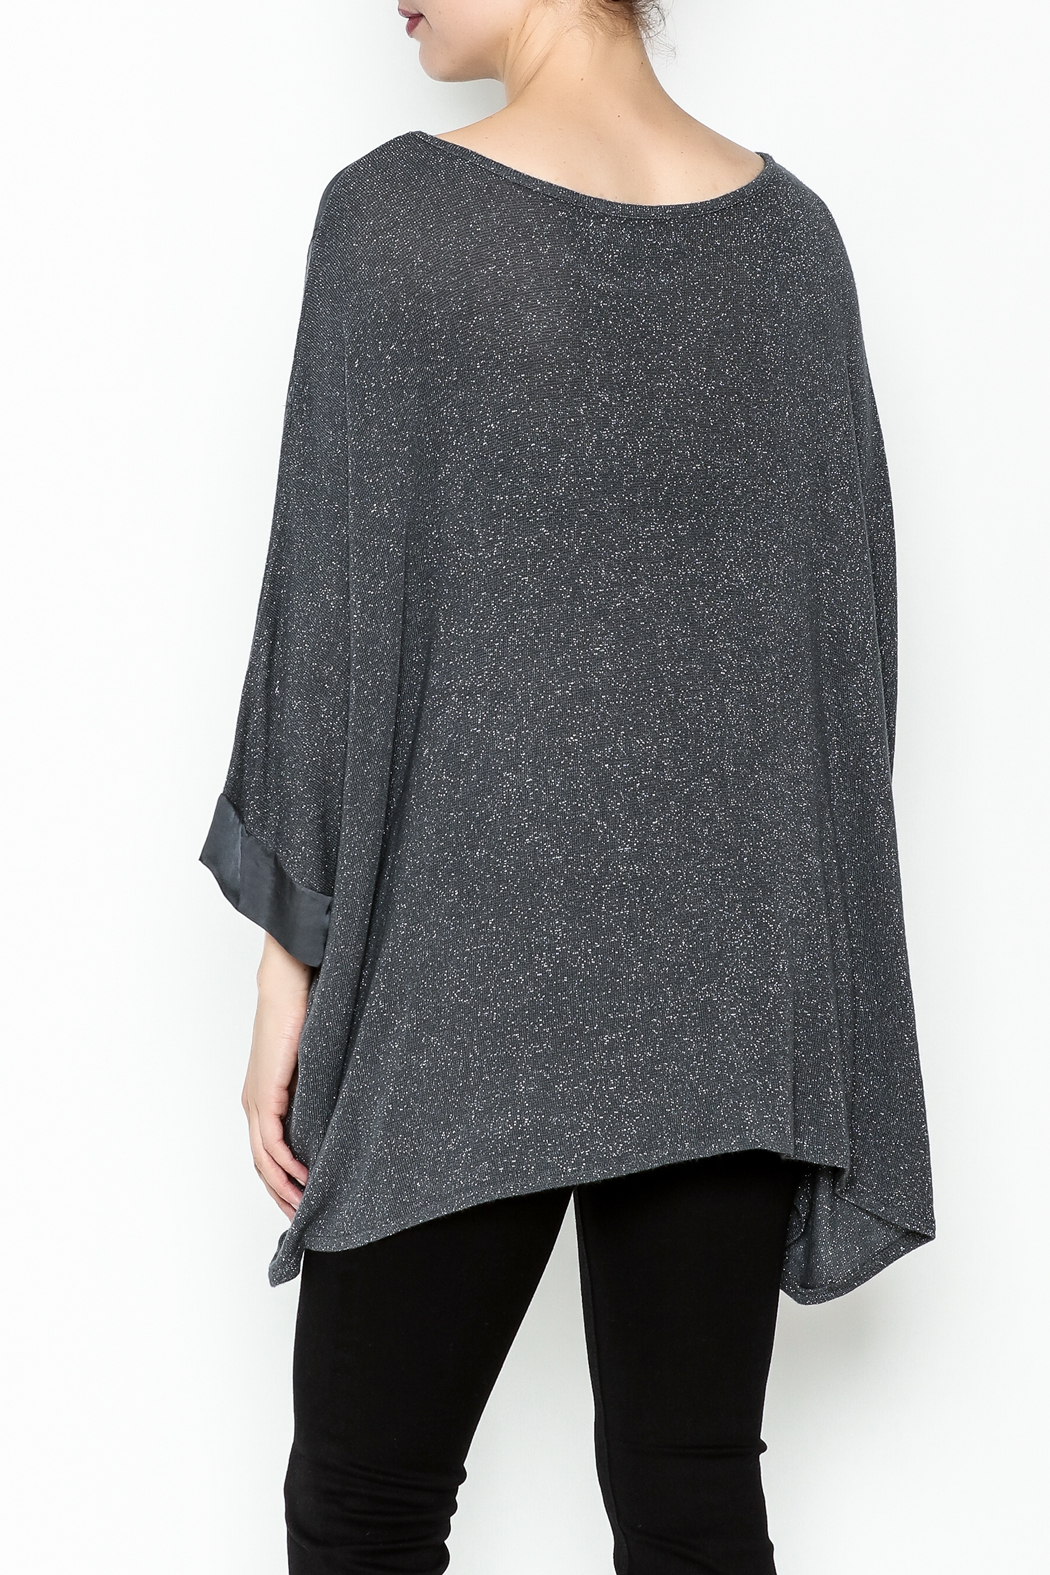 Cherish Brushed Asymmetrical Tunic - Back Cropped Image